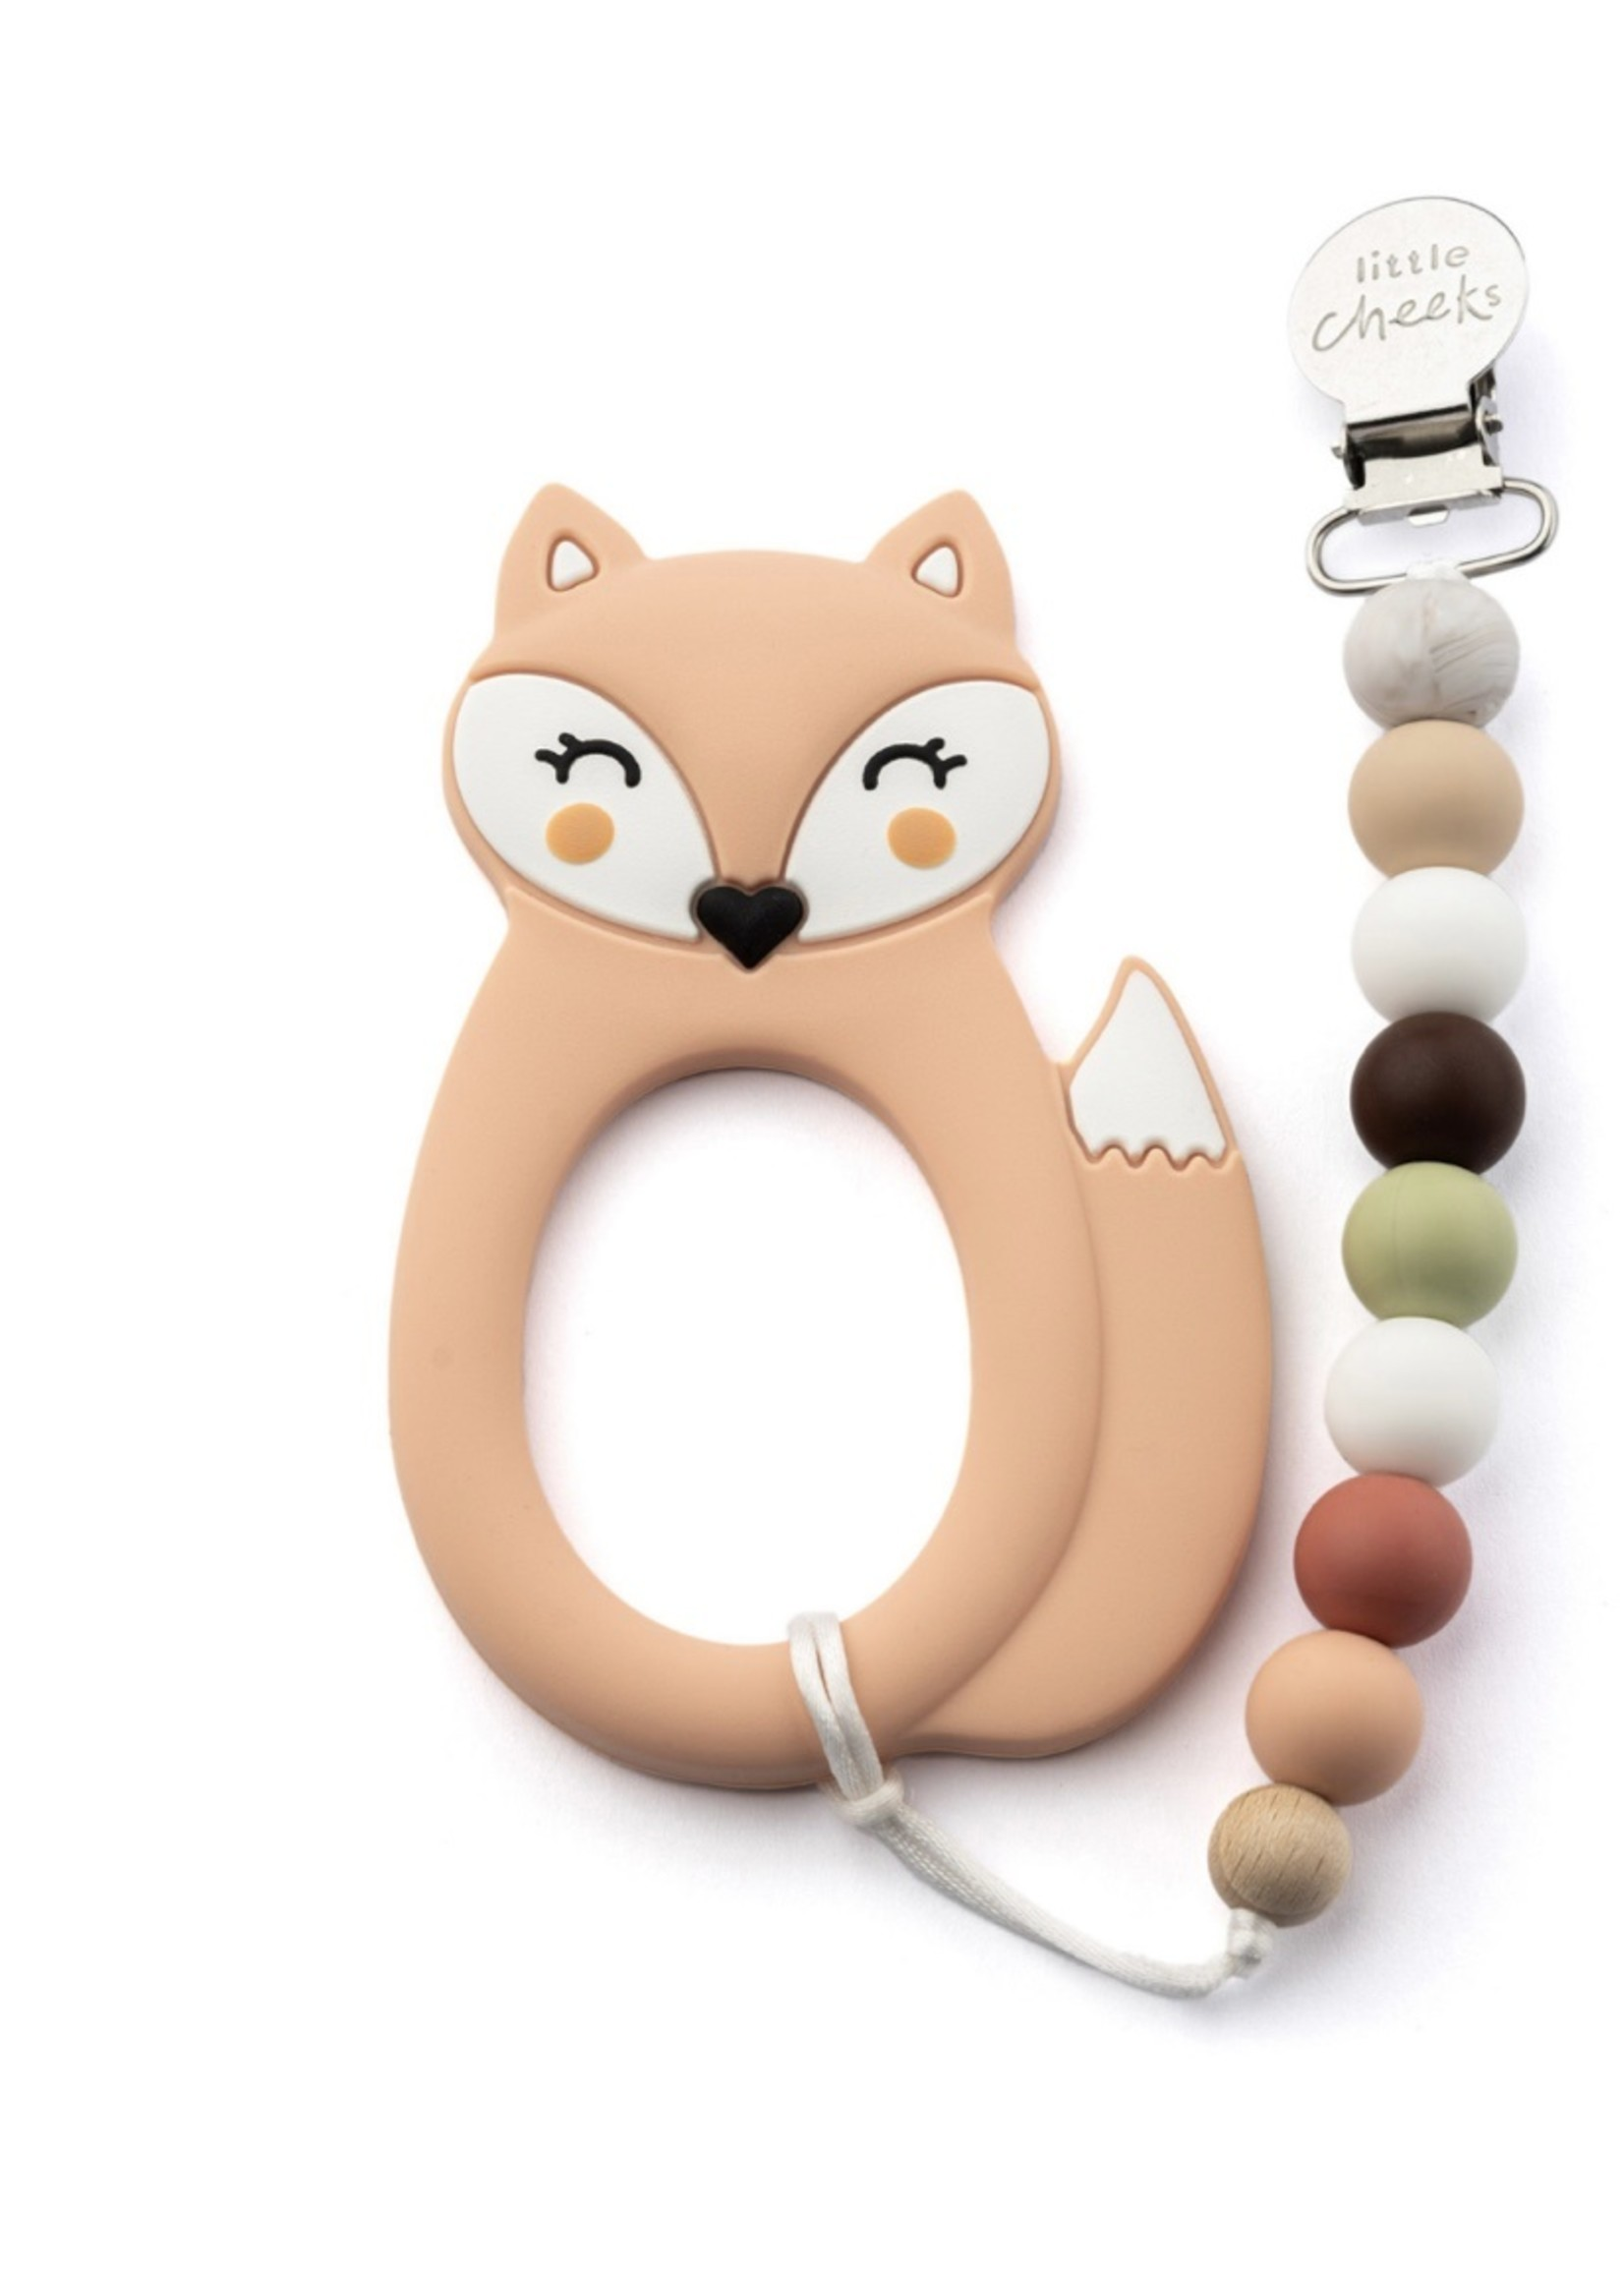 LITTLE CHEEKS LITTLE CHEEKS Peach Fox TEETHER & CLIP